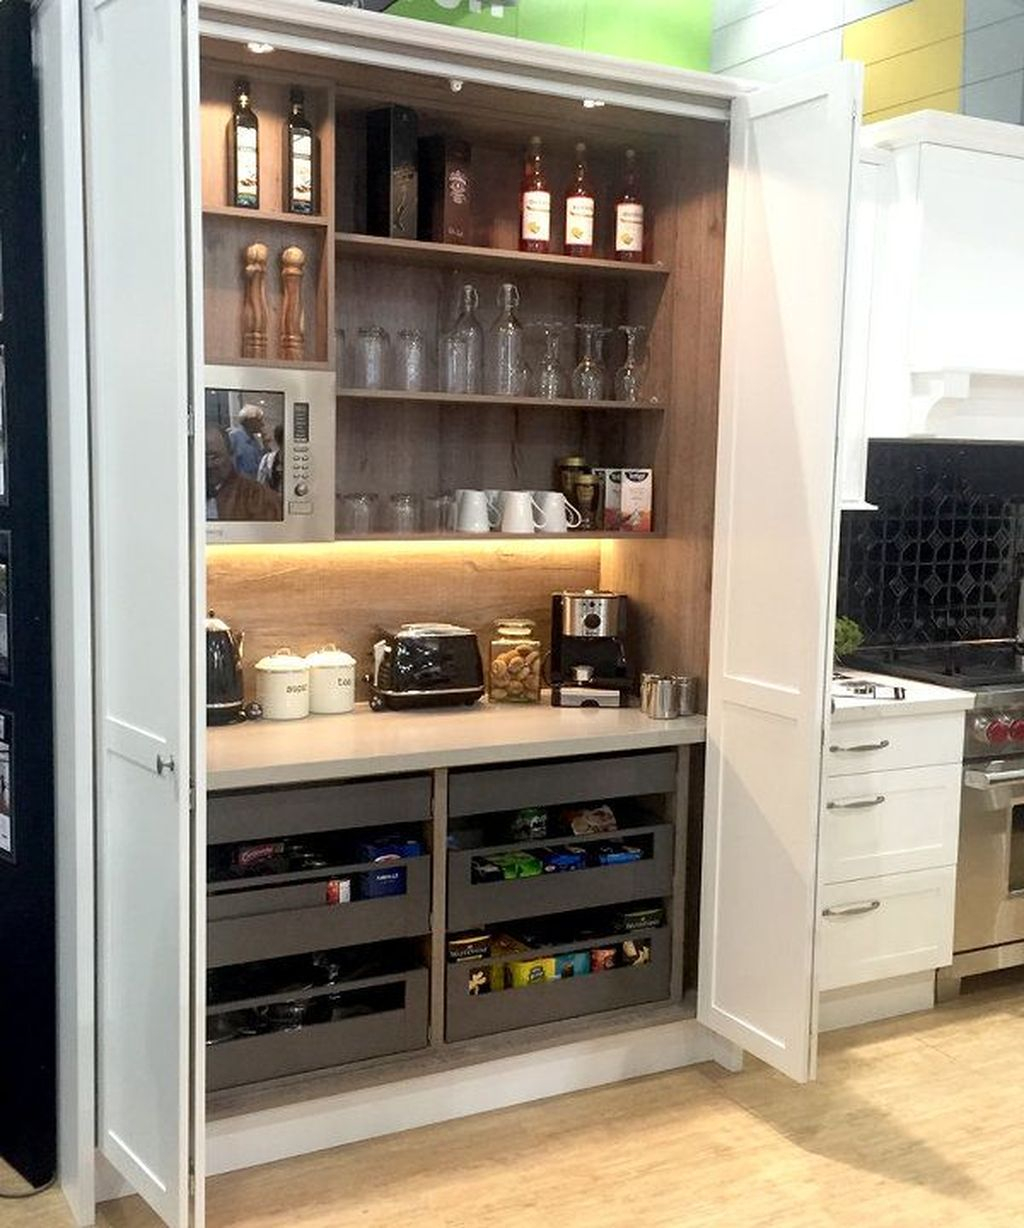 Superb Kitchen Design Ideas That You Can Try 32